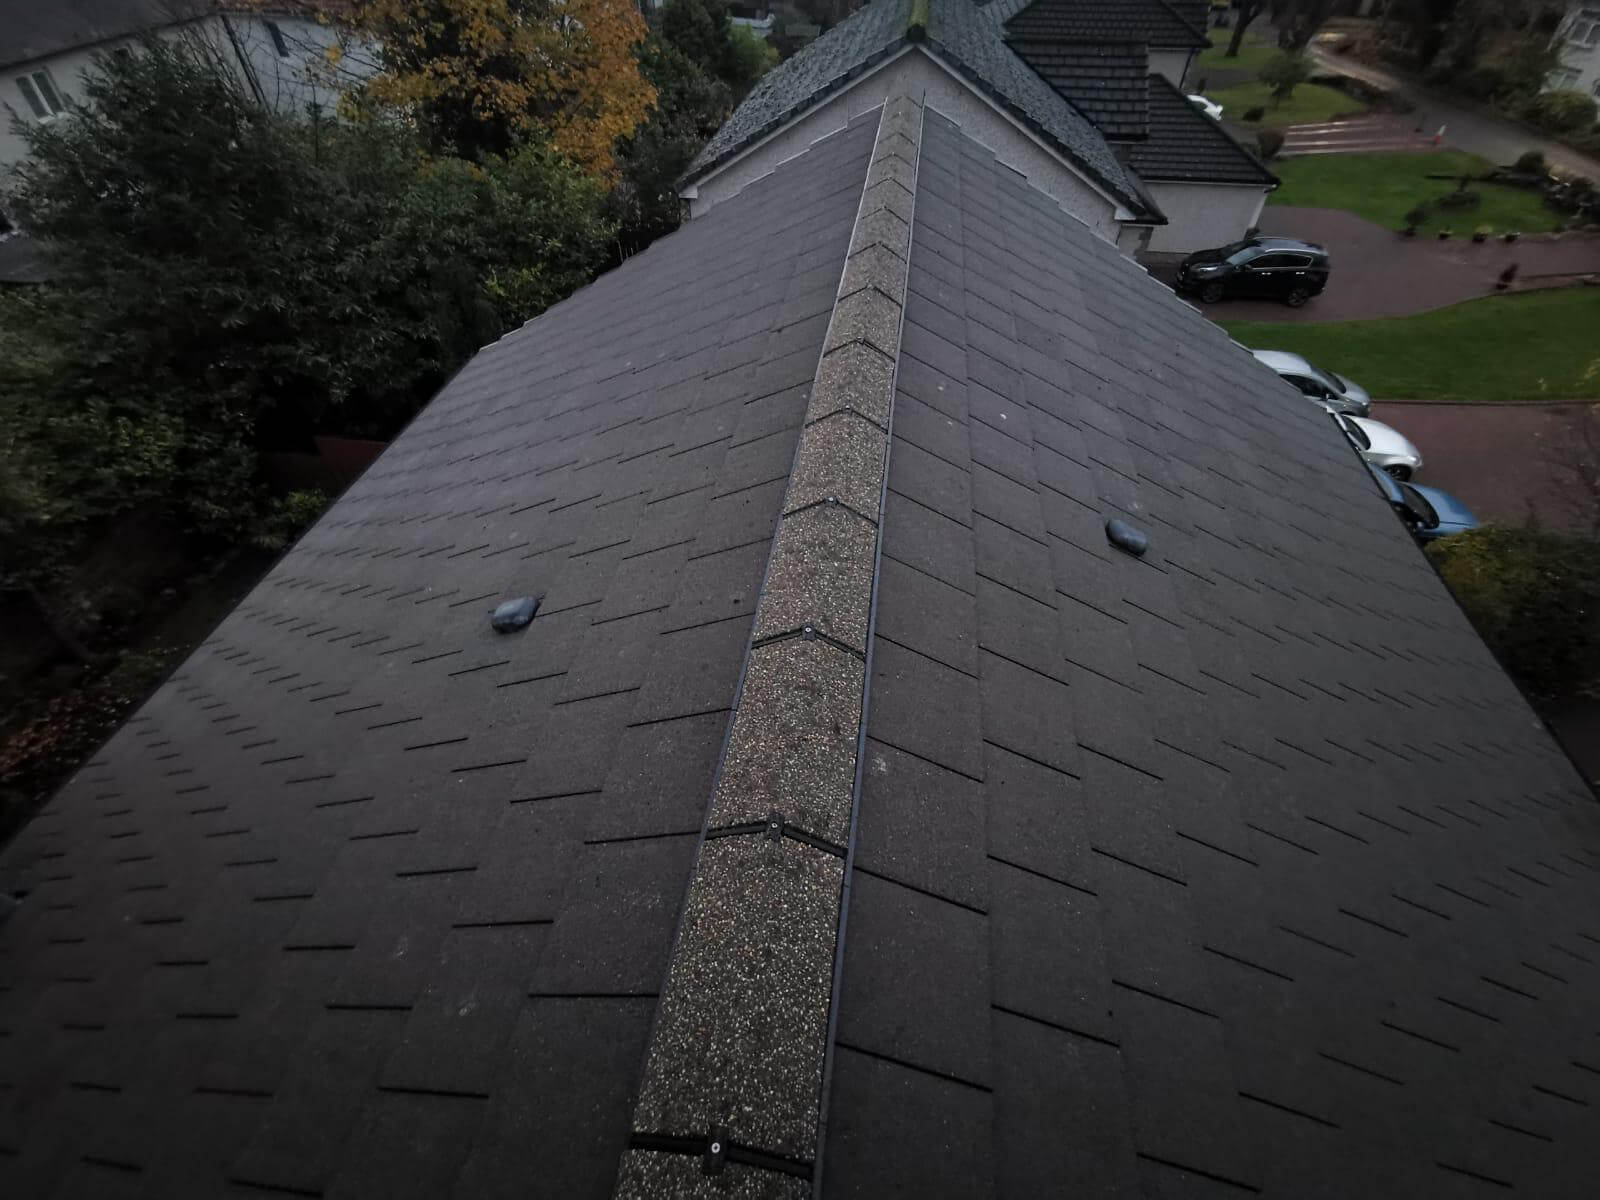 Roof after roofing services Glasgow FIX LTD